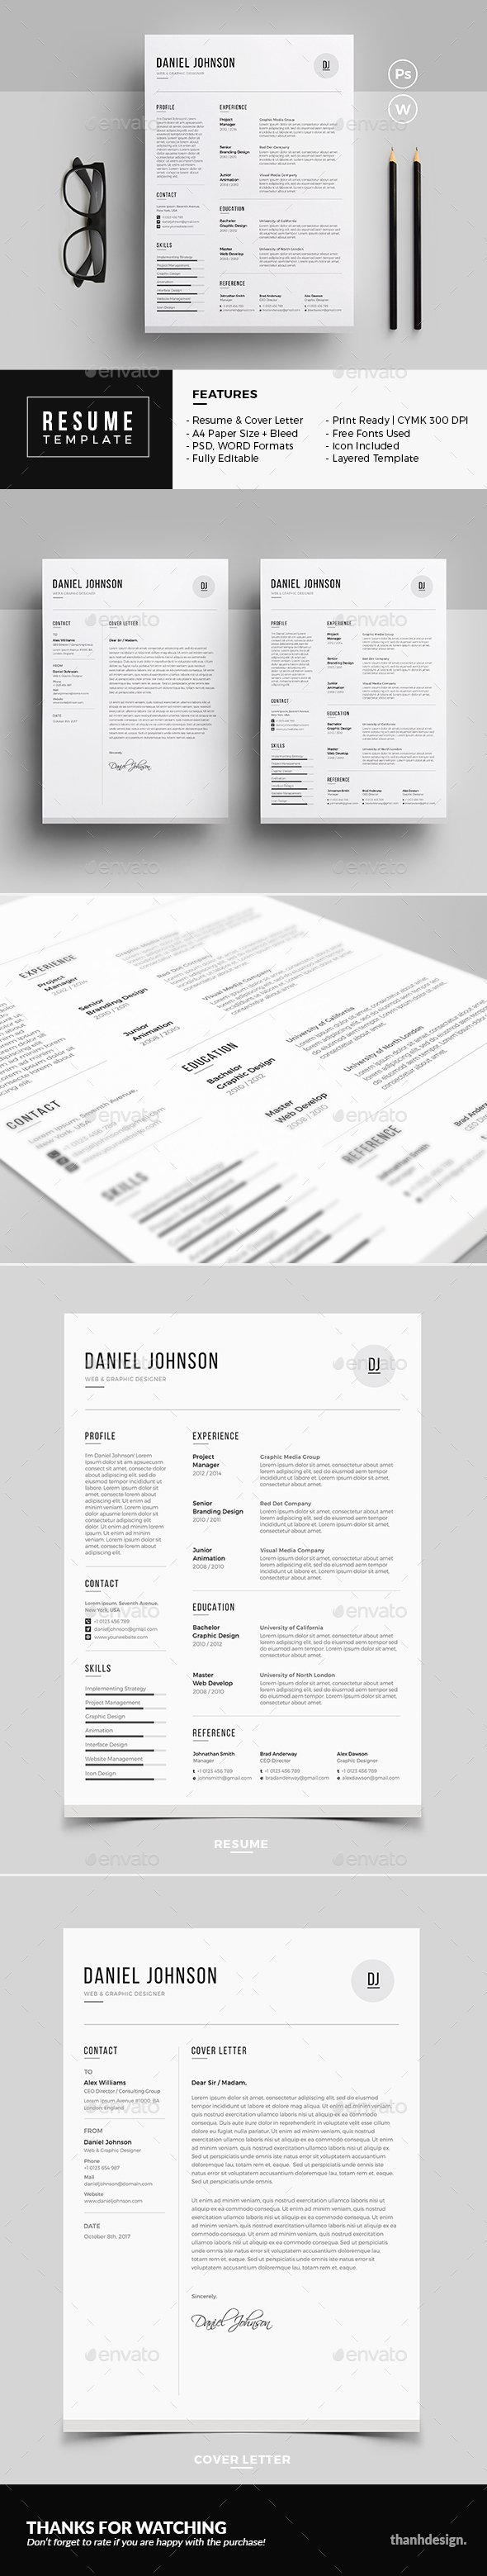 Resume Template PSD, MS Word Resume, Resume templates